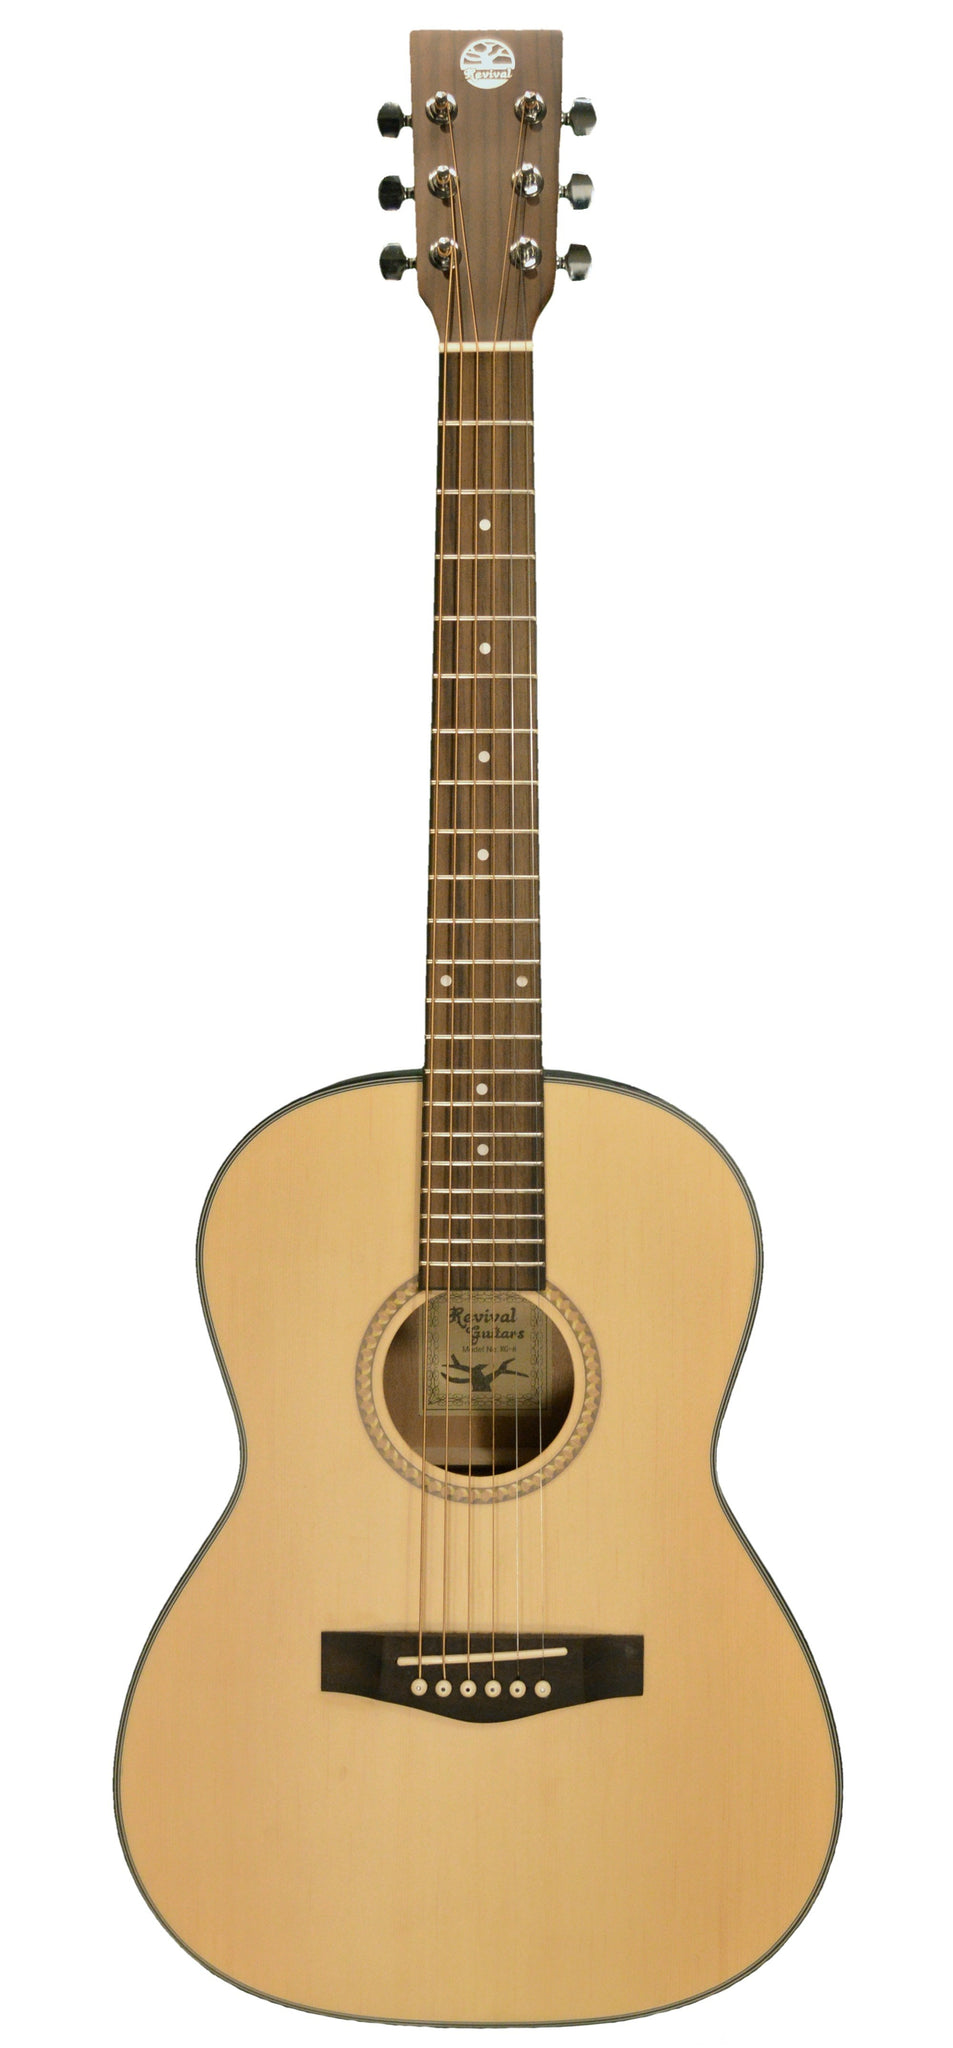 Revival RG-8 Player Series Acoustic Guitar